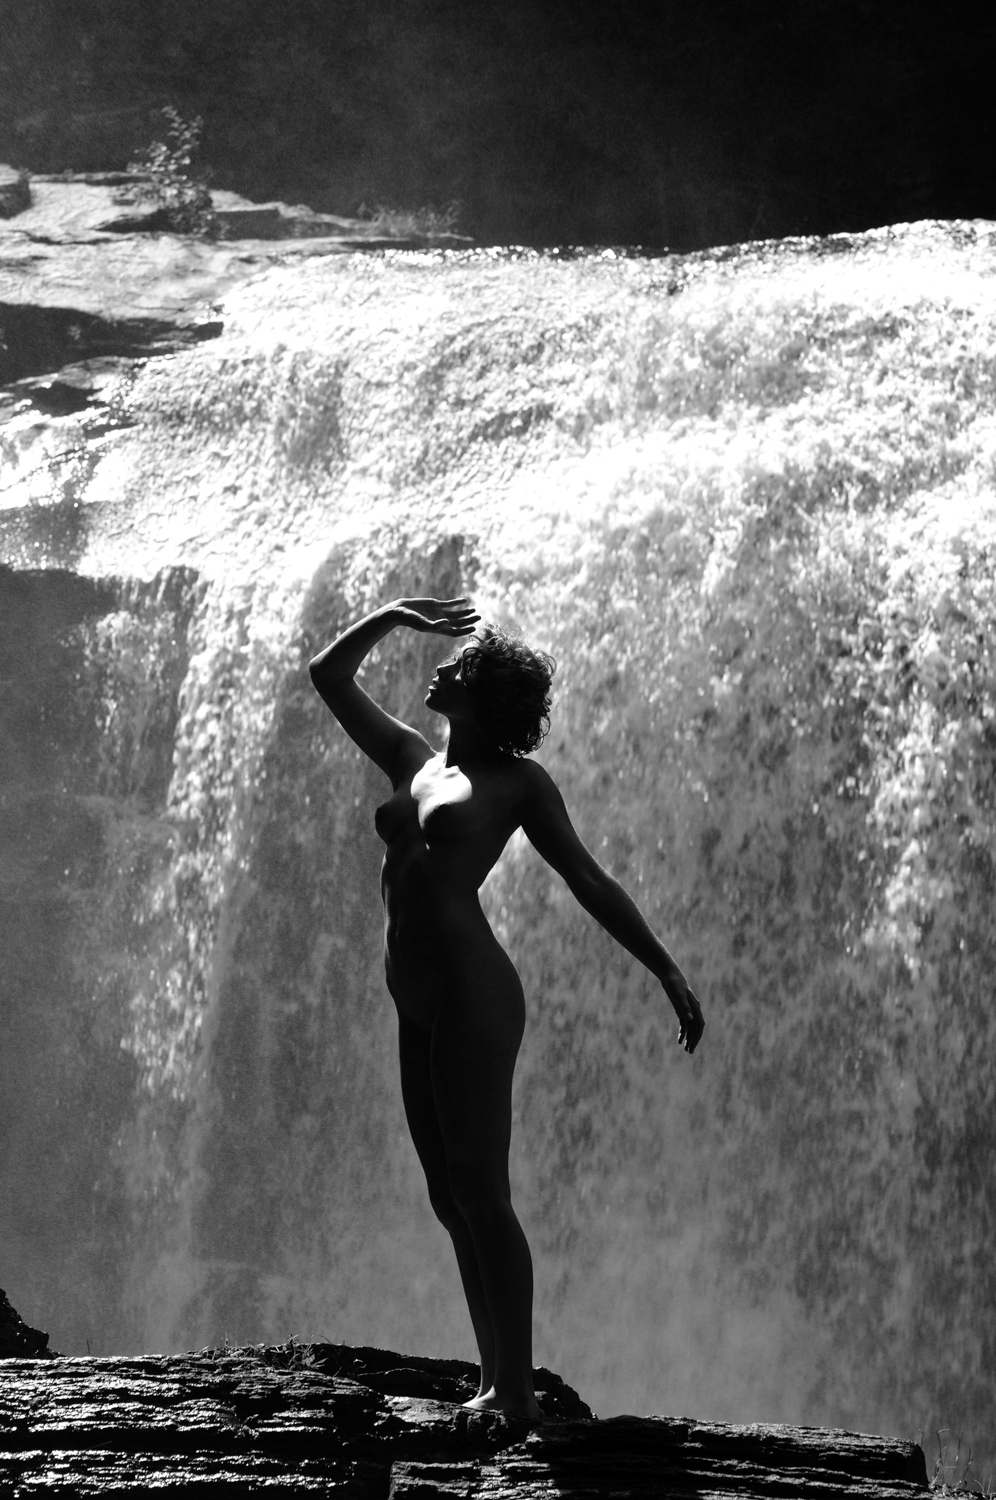 Nude silhouette by waterfall